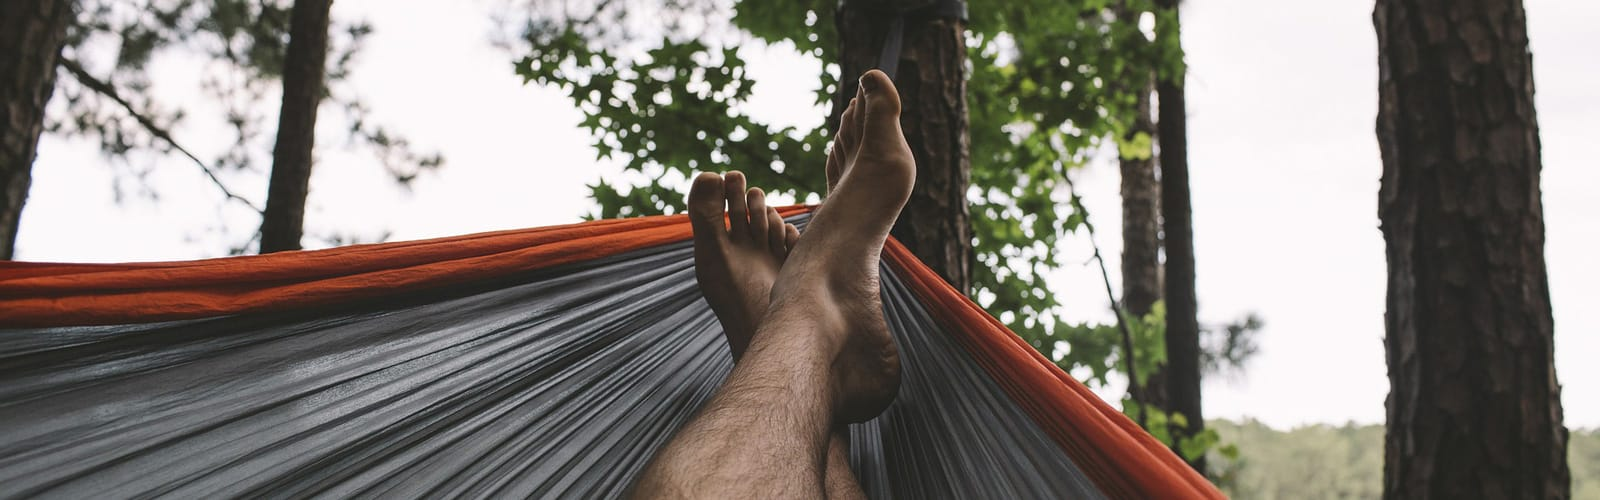 What Hammock to Choose